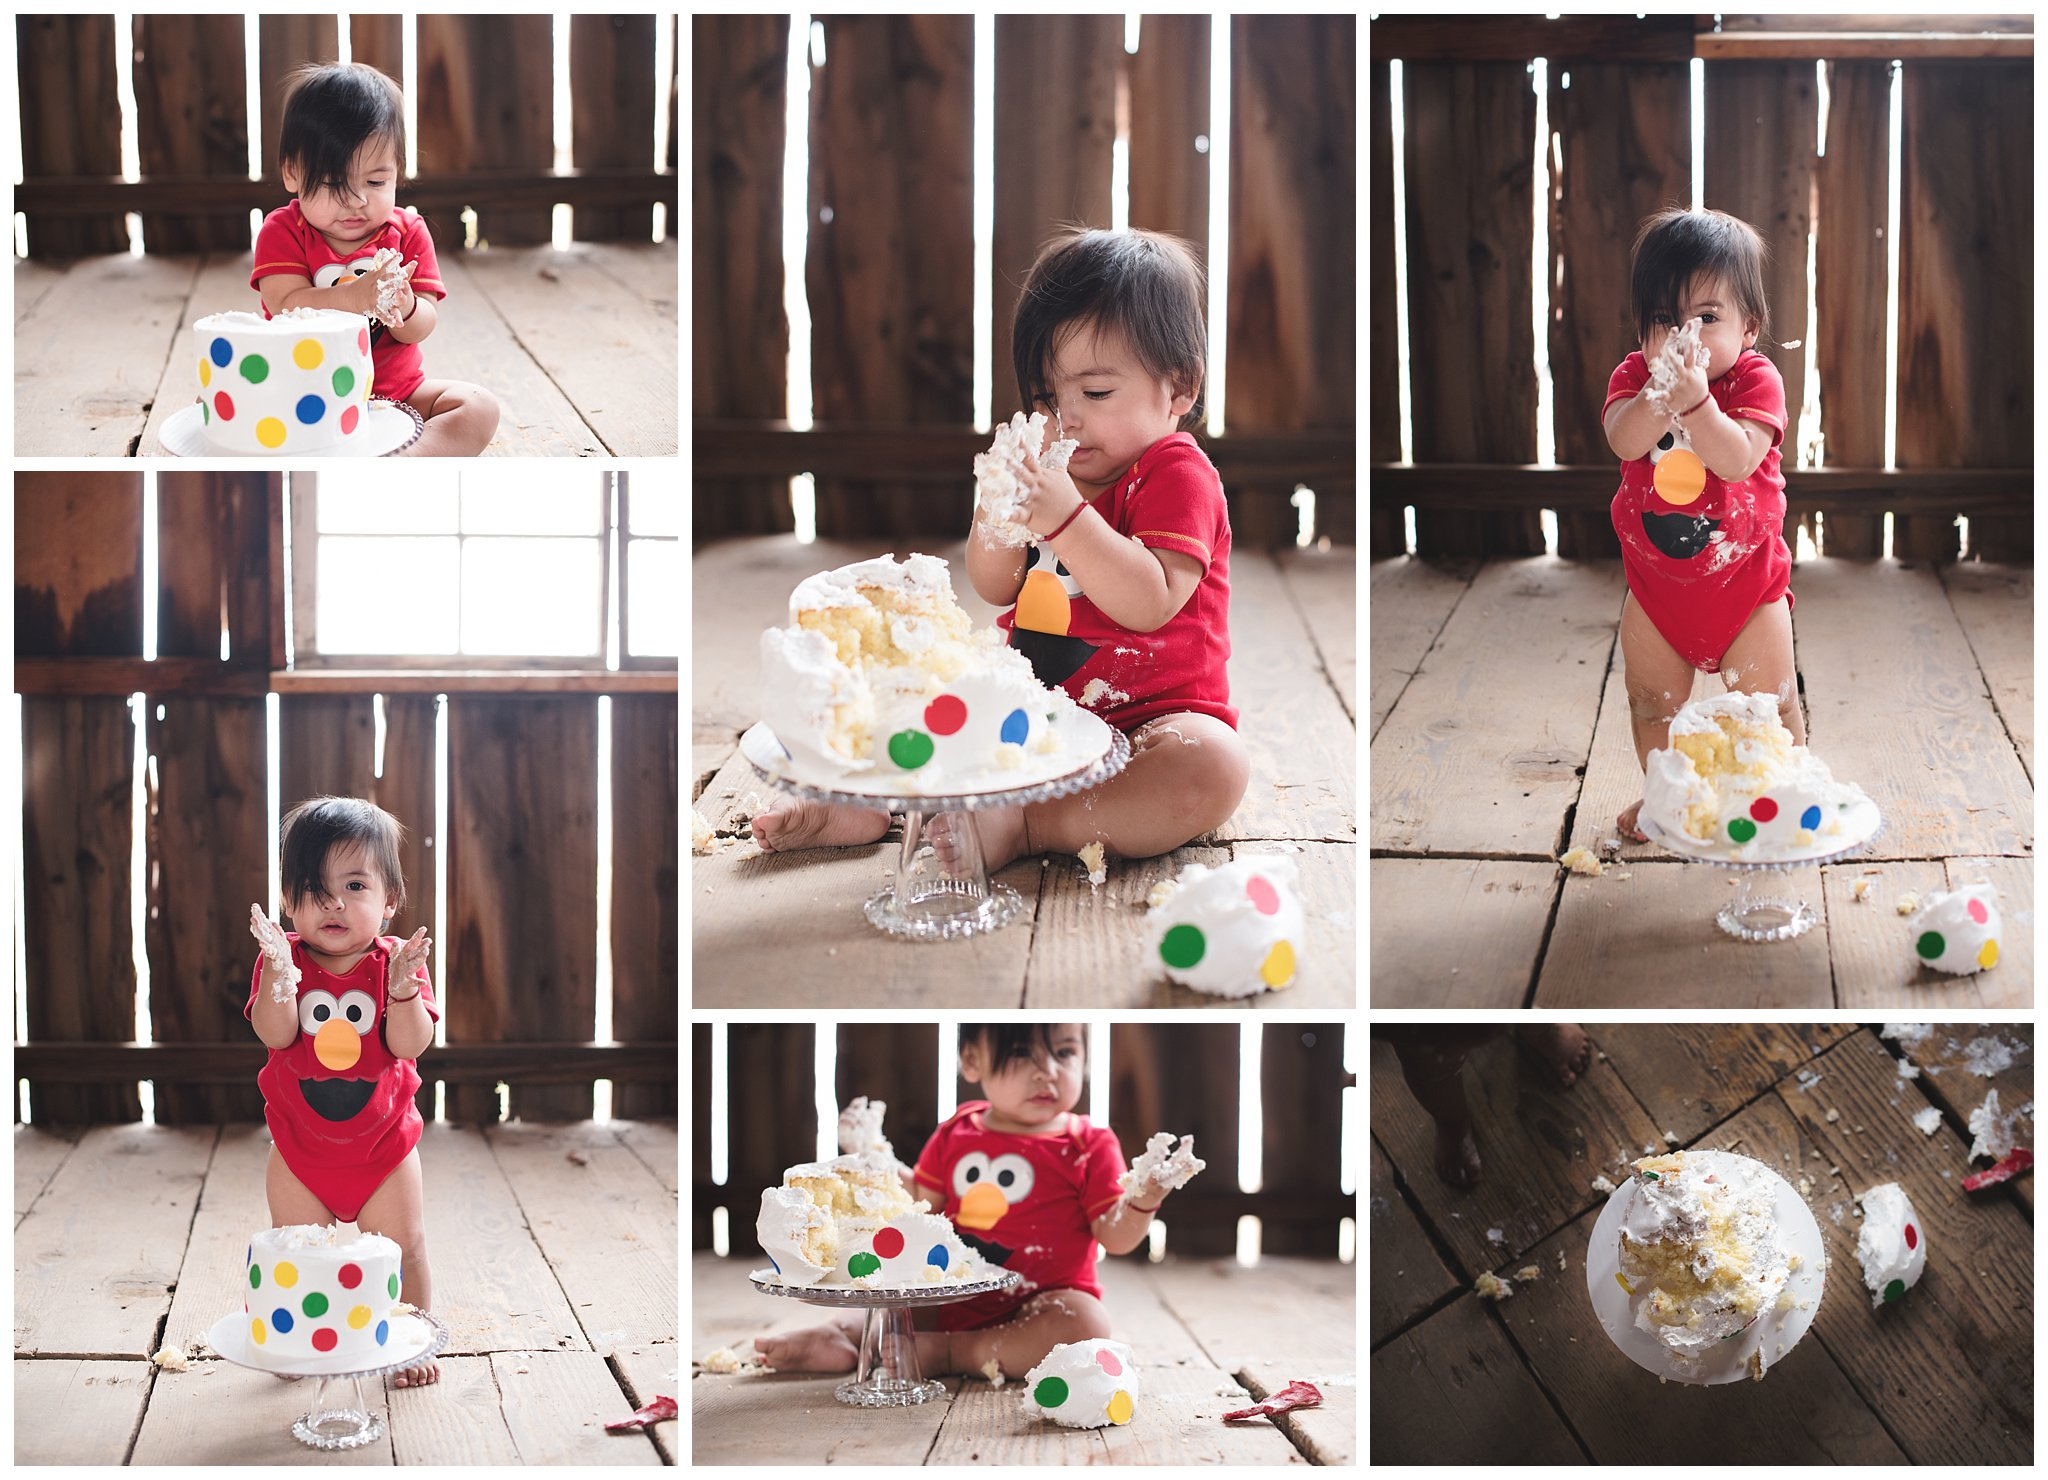 one-year-old-baby-eating-cake-in-old-barn